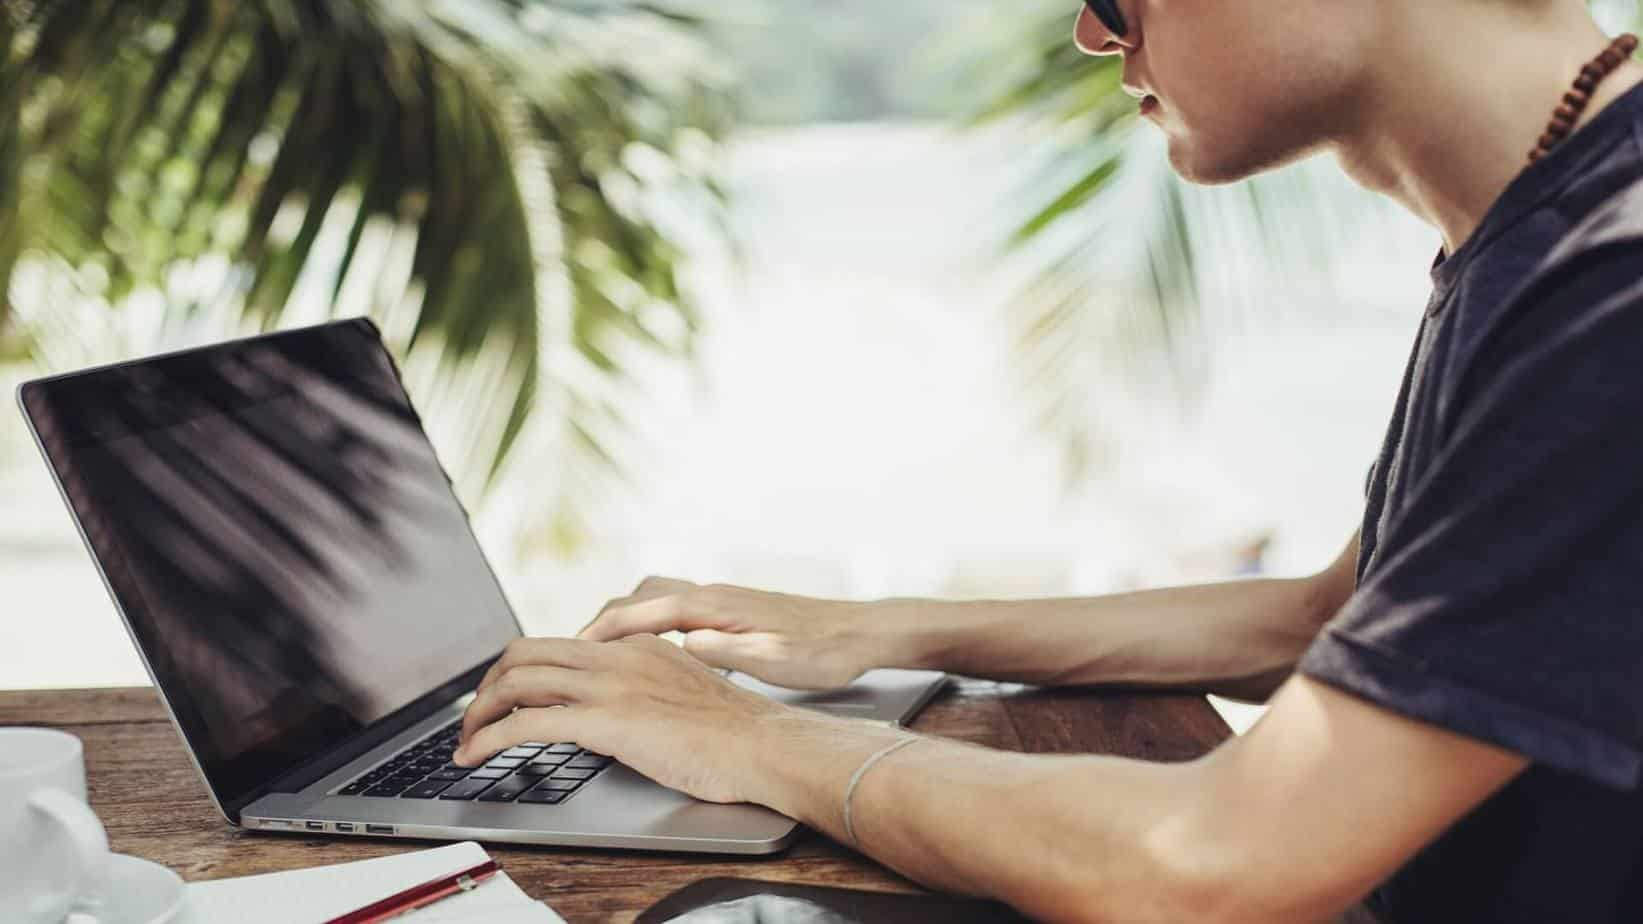 9 Products That Can Help You Work From Anywhere